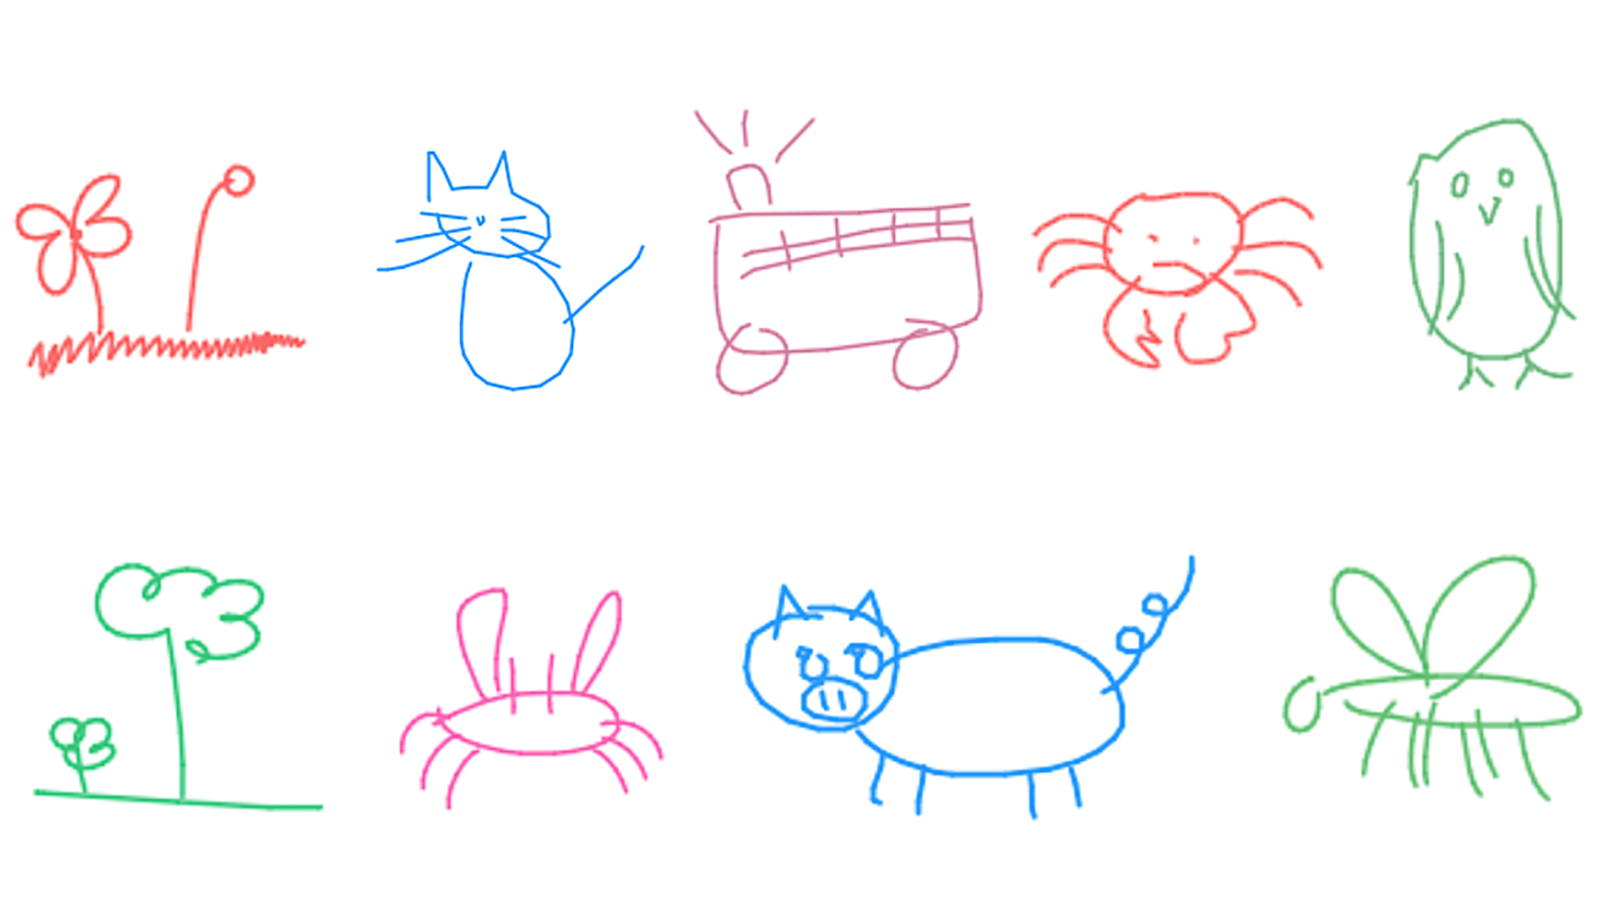 How to learn to draw machines